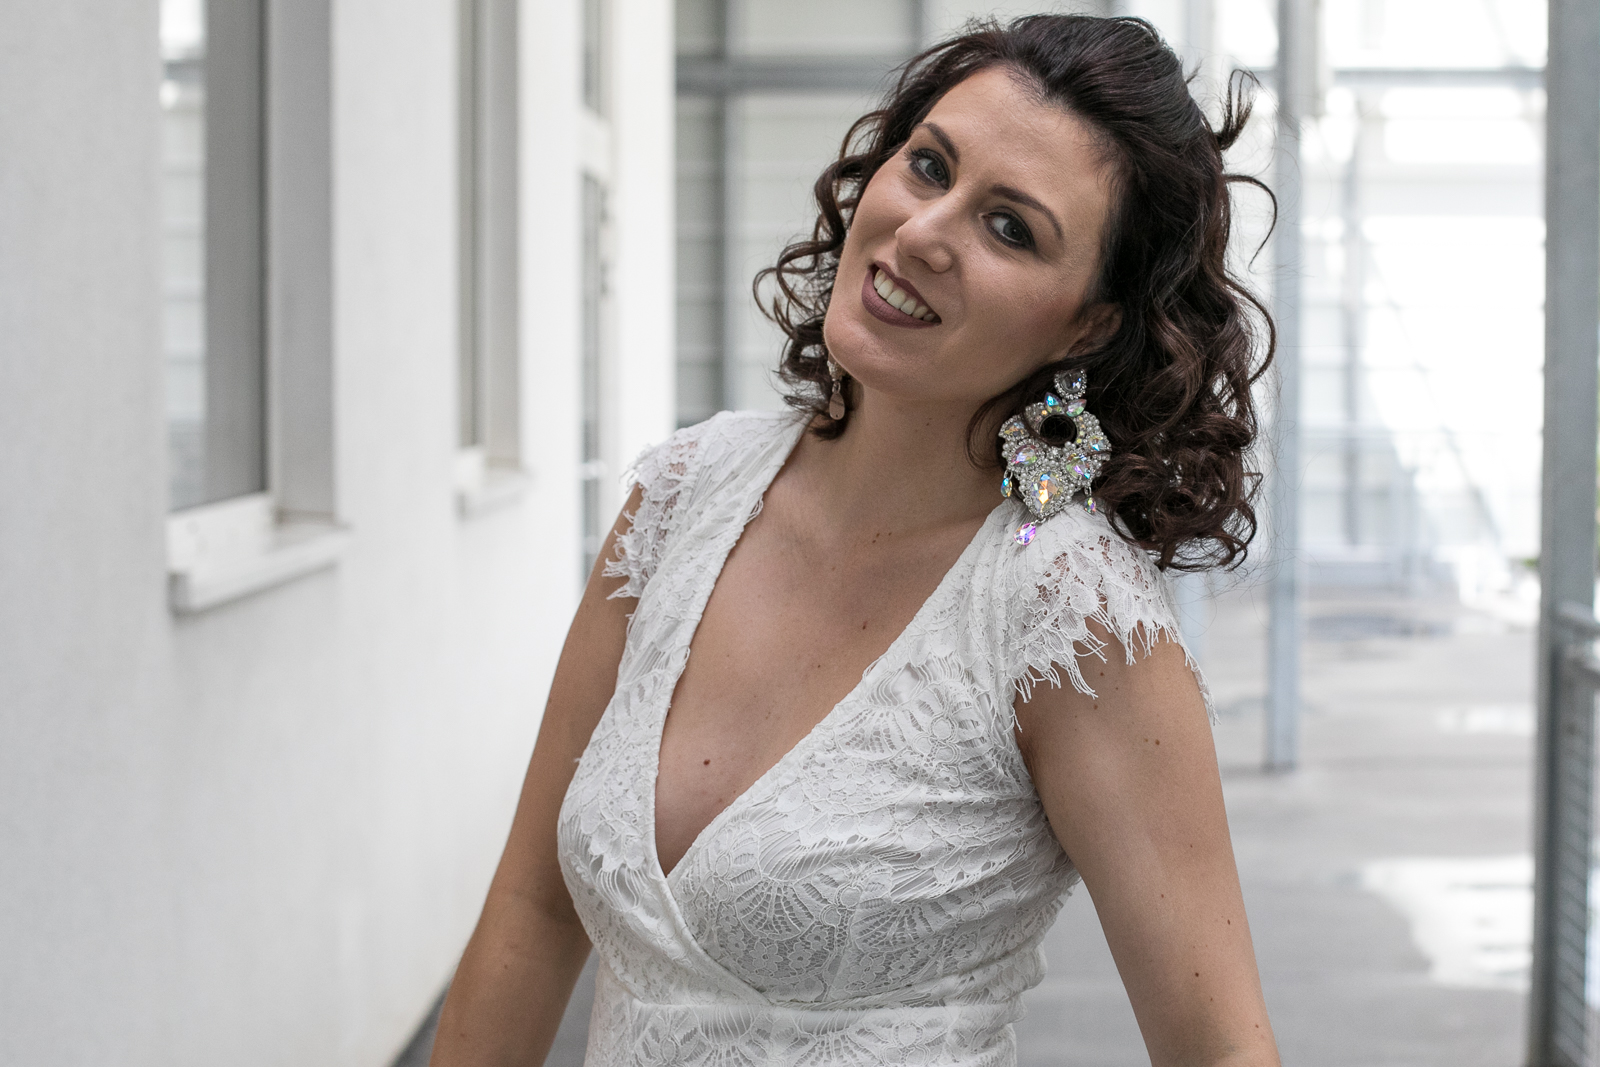 outfit_outfitpost_stradivarus_shooting_blog_wien_vienna_outfit_fotobyannaschuecker_anna_schuecker_annaschuecker_nadjanemetz_nadja_nemetz_violetfleur_violet_fleur_jumpsuit_white_lace_whitelace_summeroutfit_summer_party_partyoutfit_helenadia_helena_dia_6